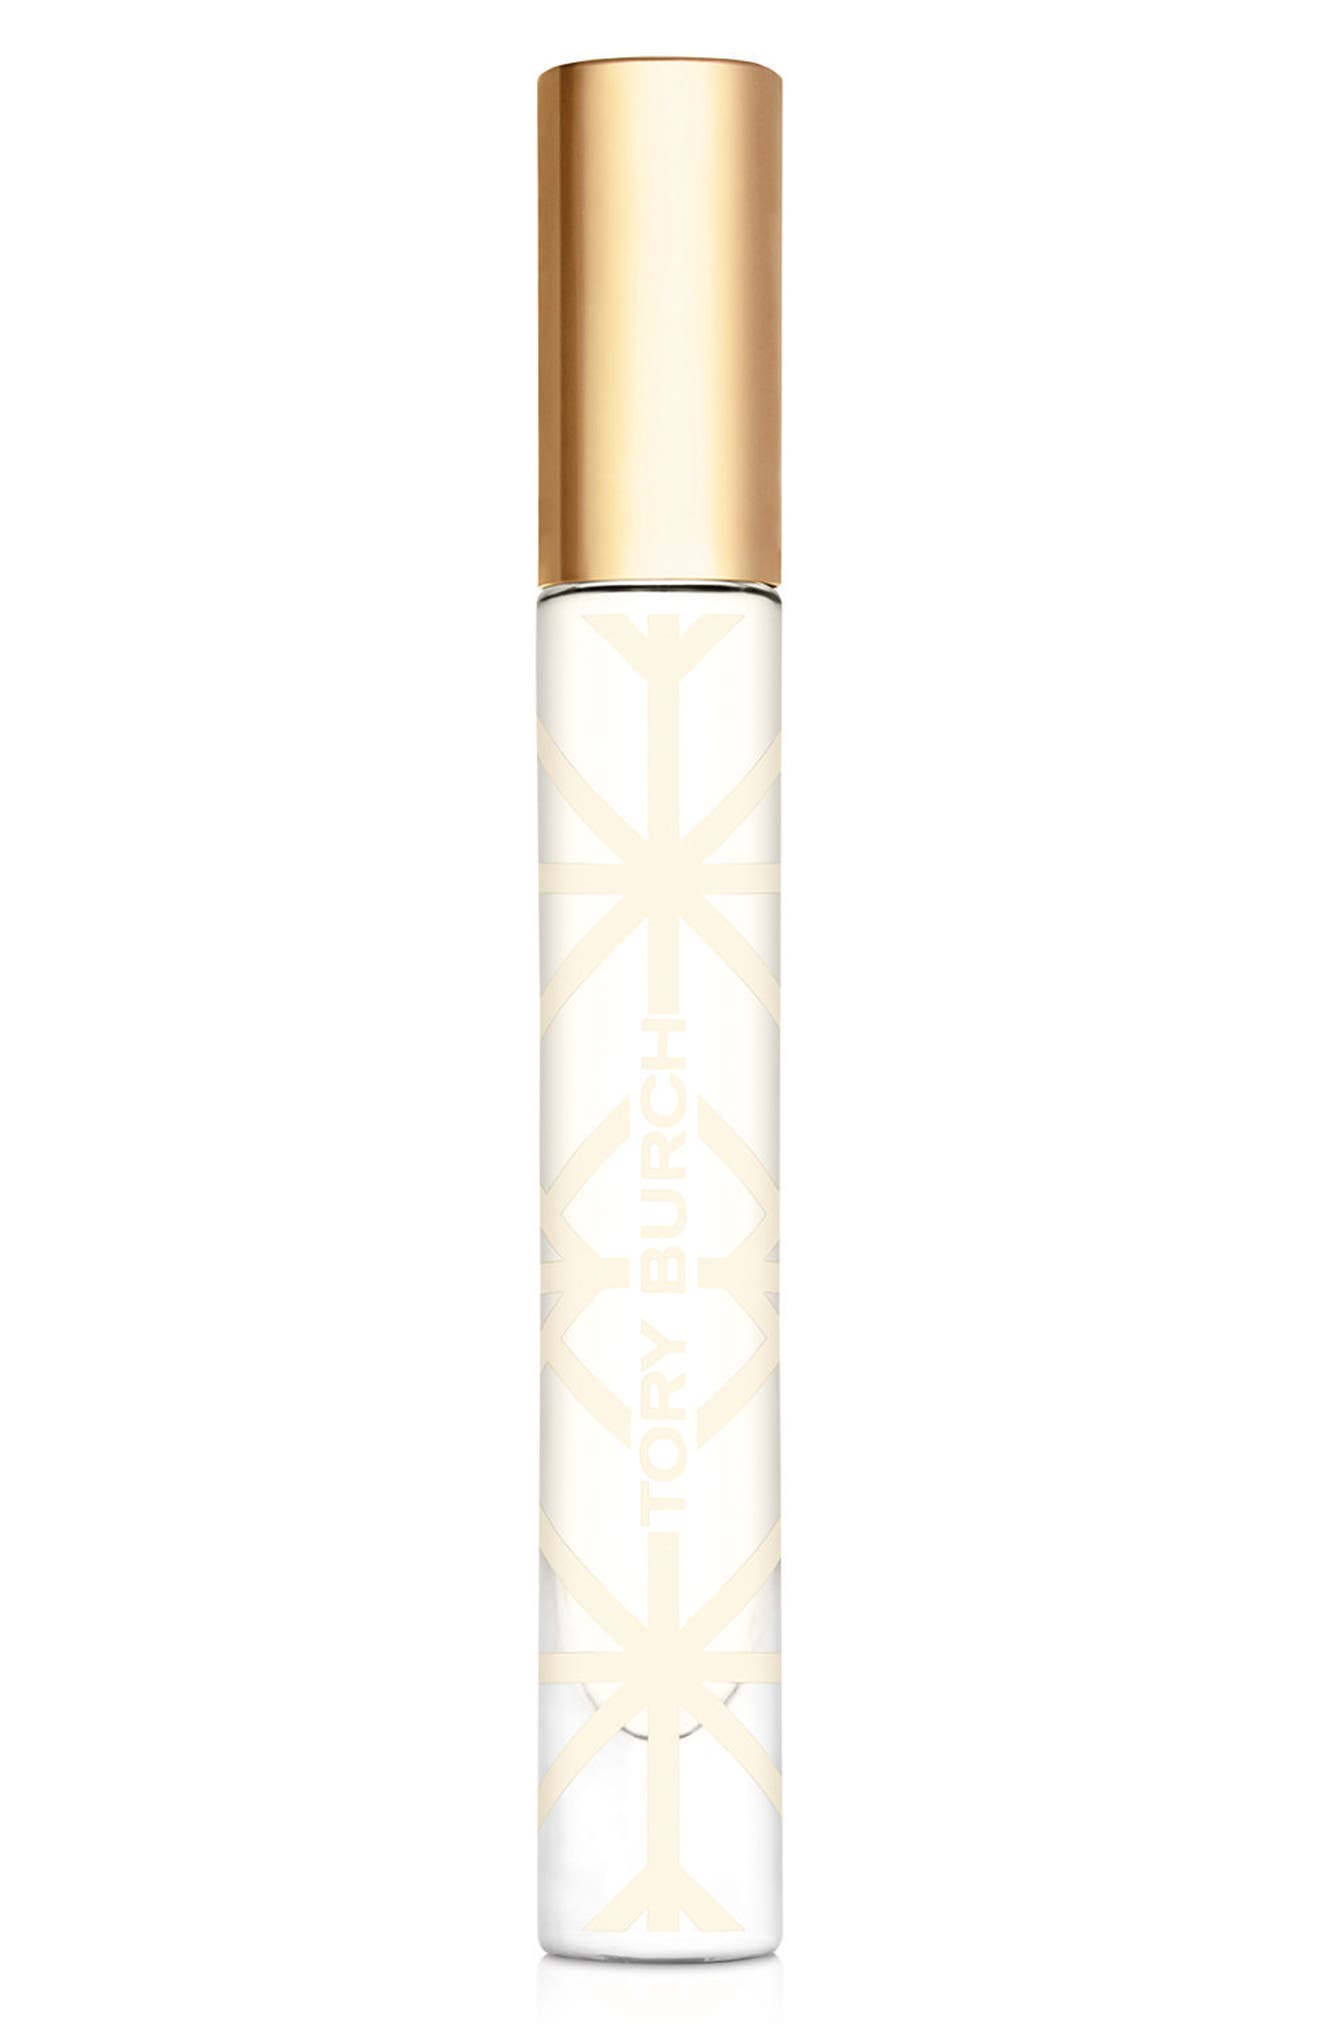 Just Like Heaven Extrait de Parfum Rollerball,                         Main,                         color, NO COLOR